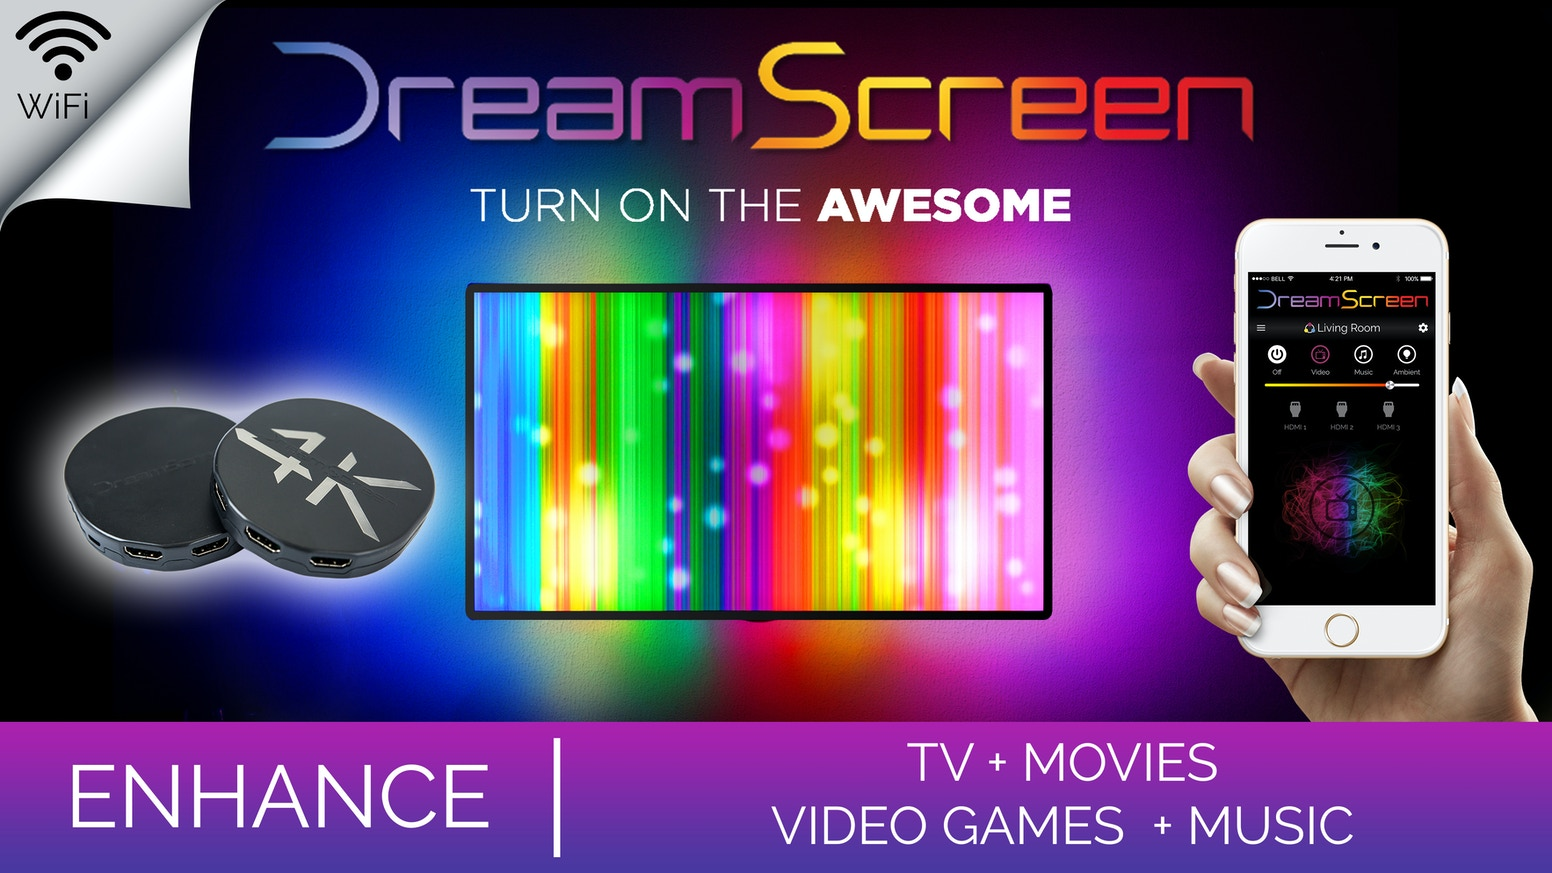 DreamScreen enhances TV, Movies, & Video Games by stretching the size, softening the picture and making TV easier on your eyes.